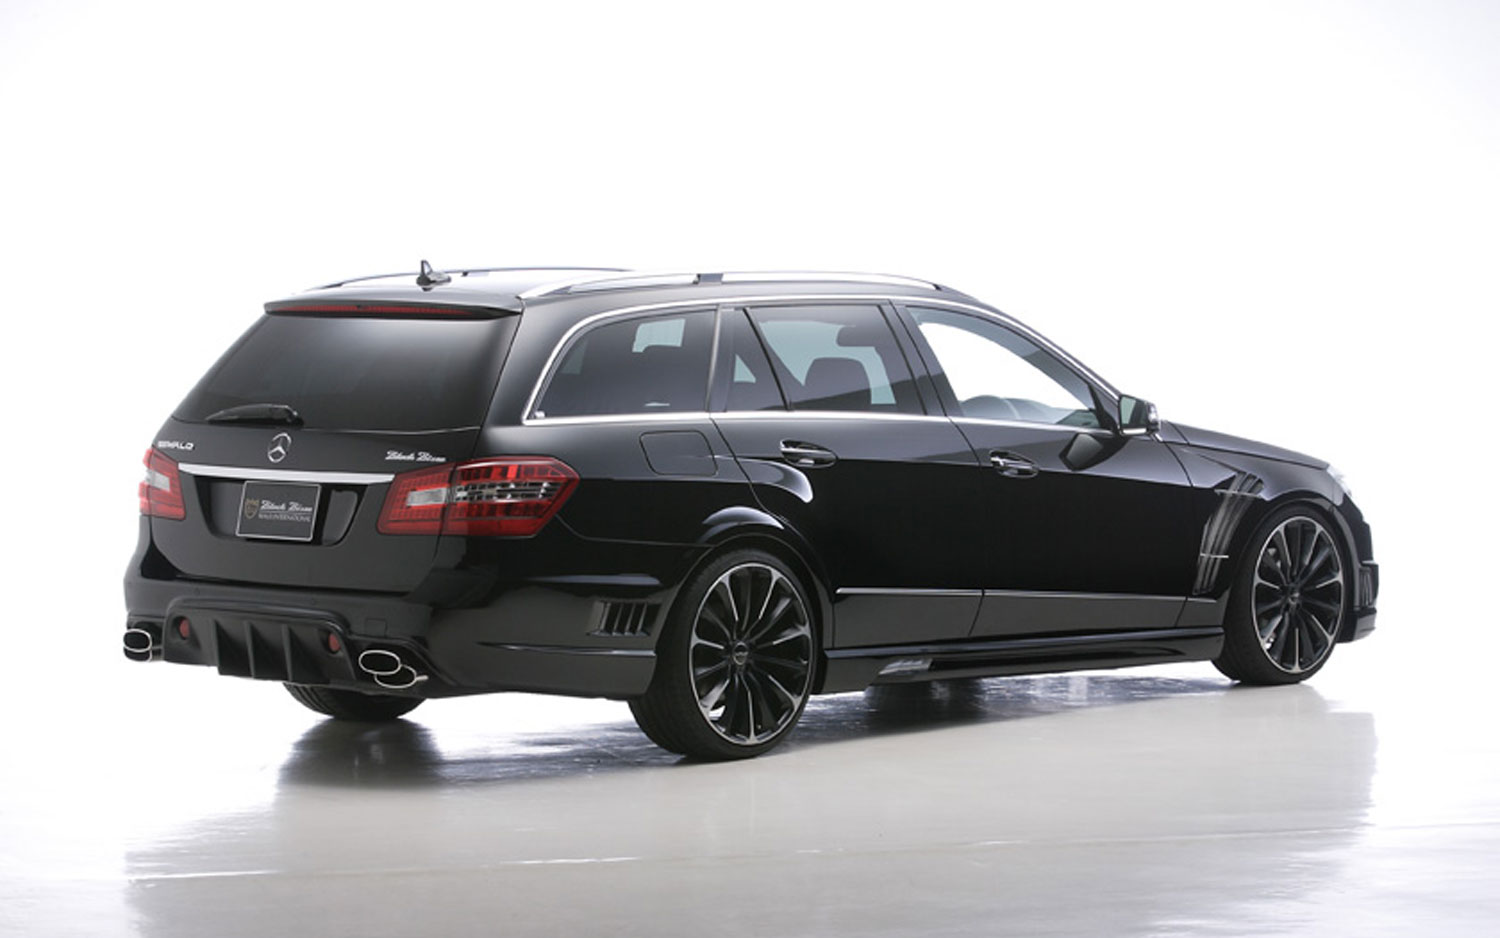 Black Bison: Mercedes Benz E Class Wagon Modified By Wald